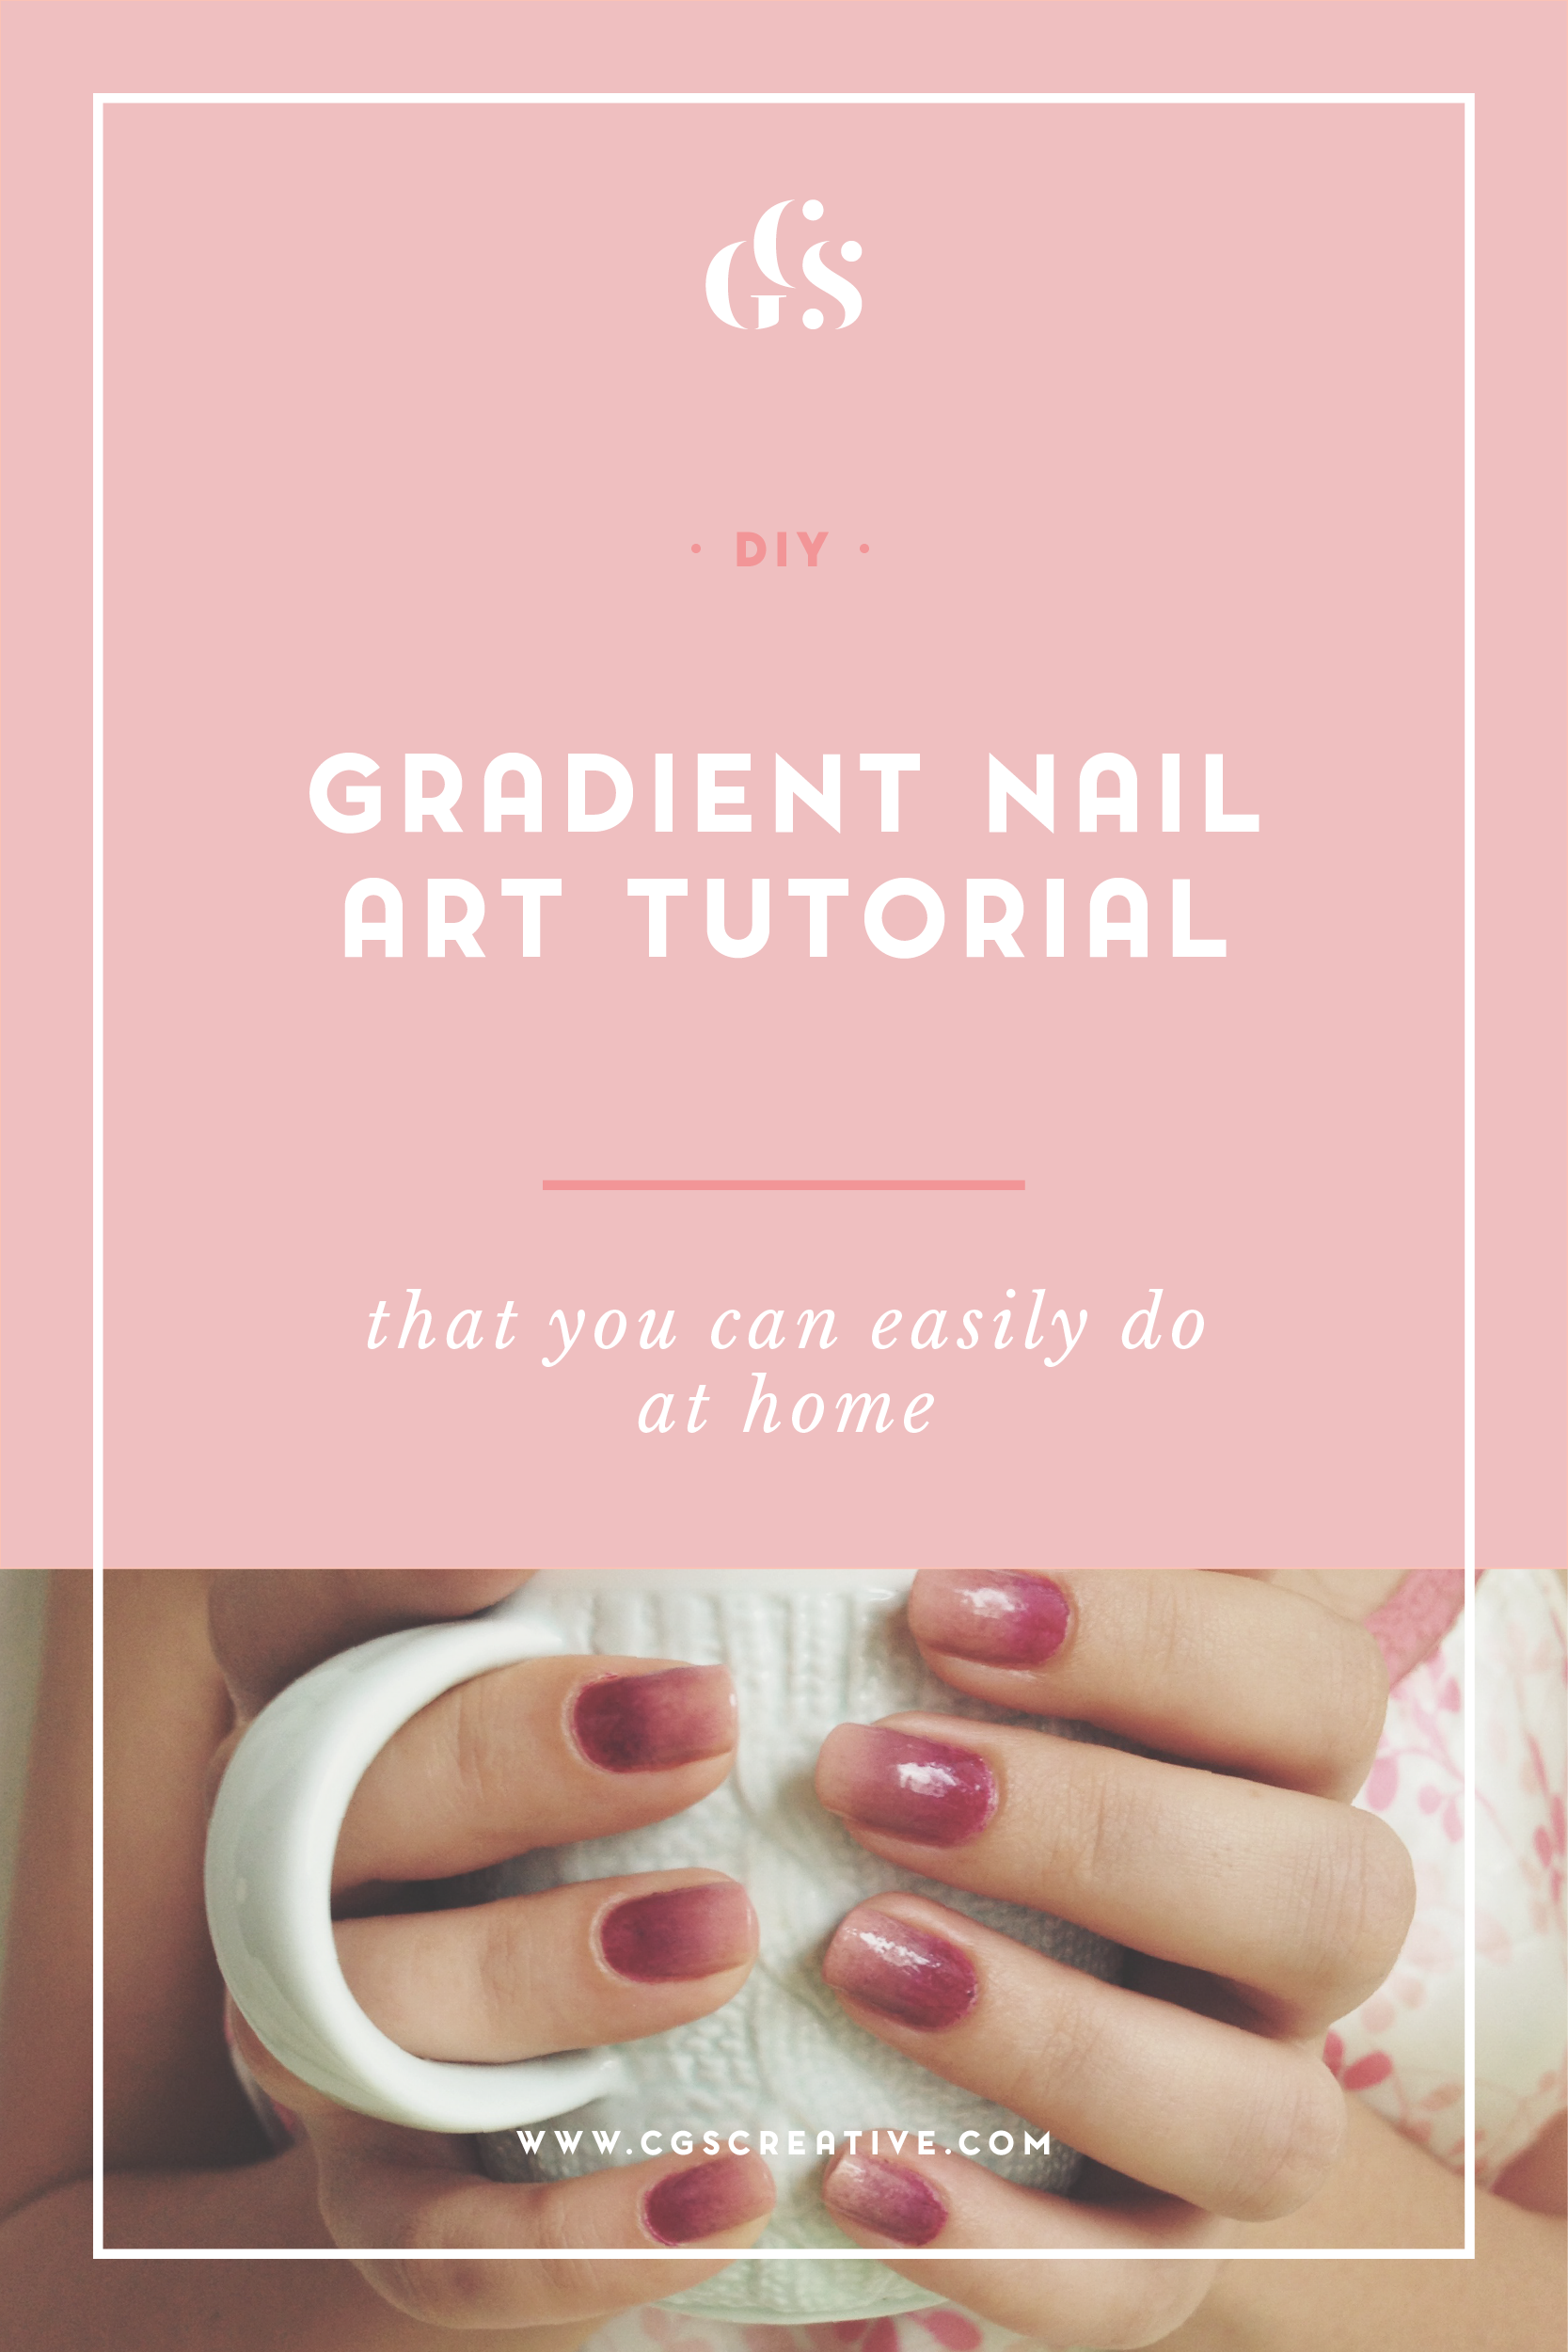 DIY Gradient nail art tutorial_Artboard 1.png